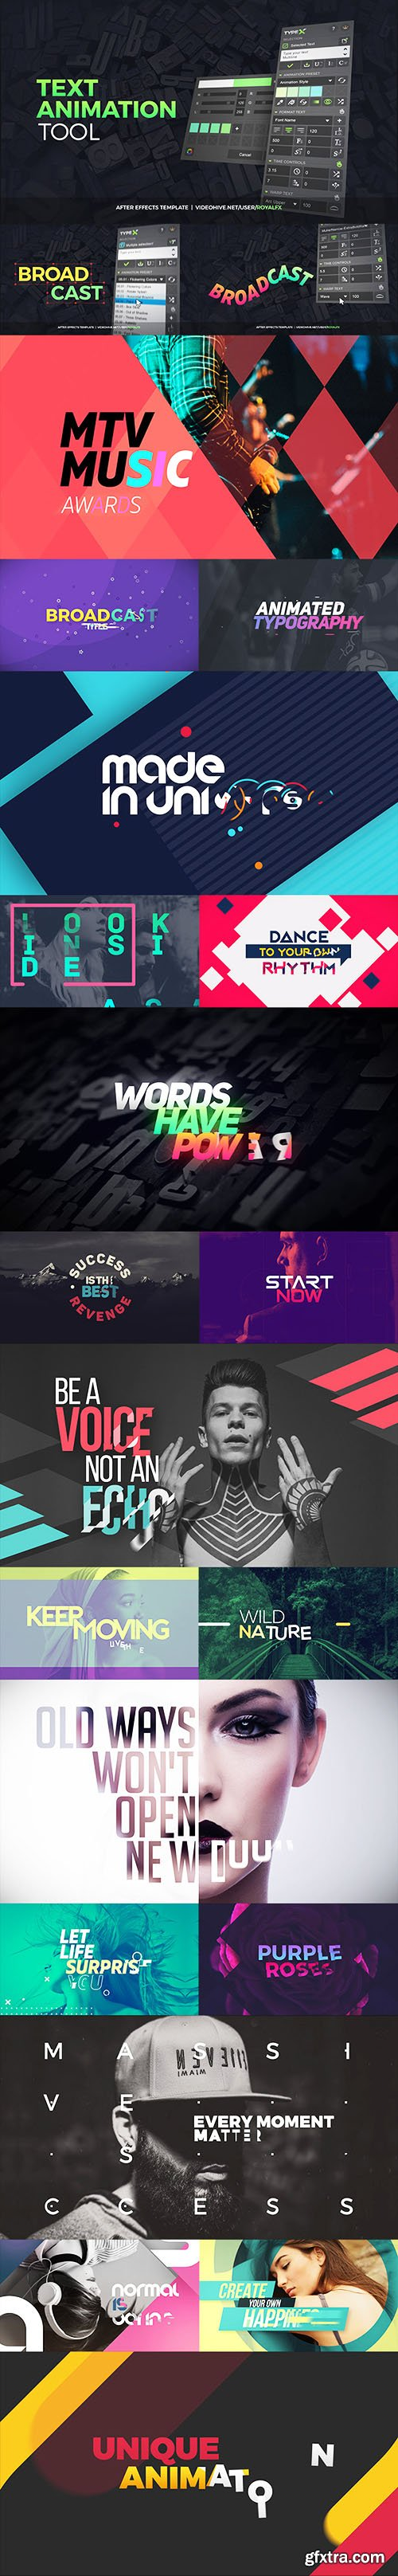 Videohive TypeX - Text Animation Tool   VOL.05: Broadcast Titles Pack 20233979